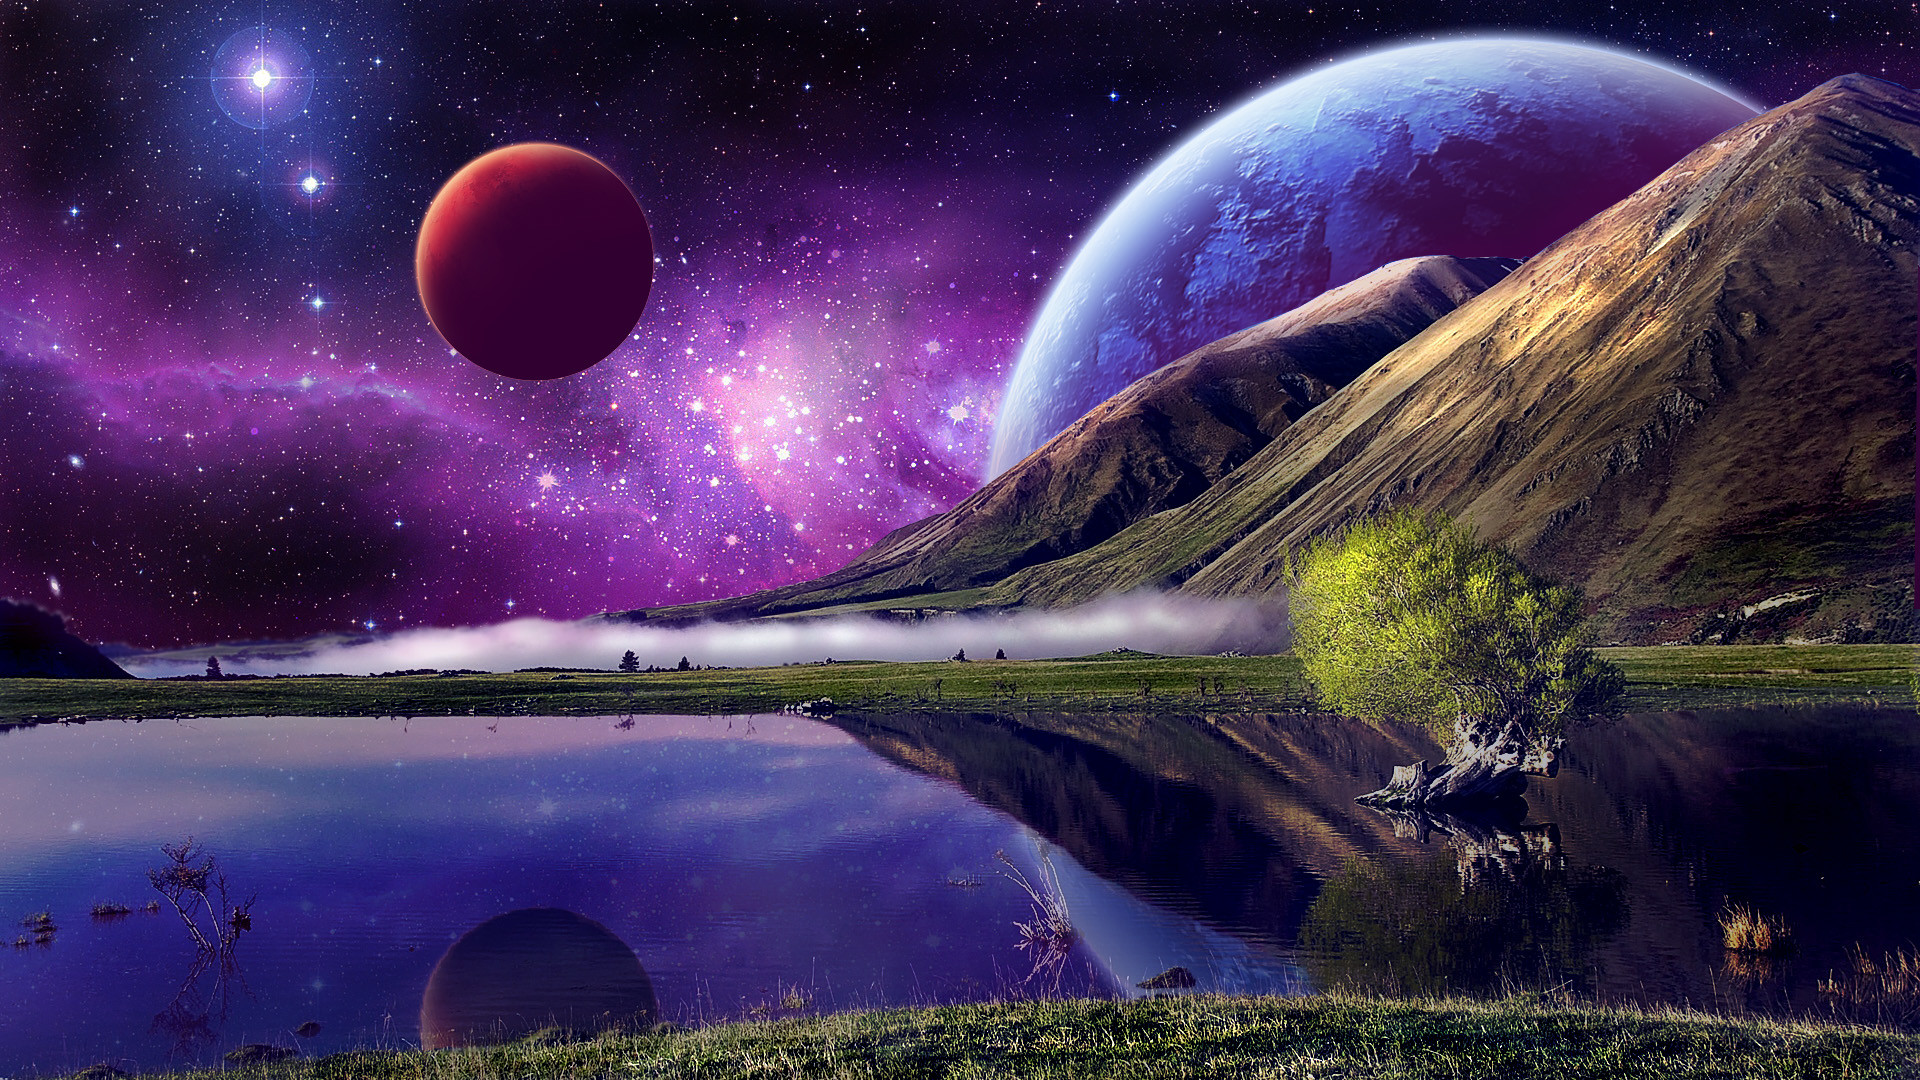 Epic Space Wallpaper  69  images  1920x1080 Epic Space Wallpapers hd 1080p Epic Space Background hd